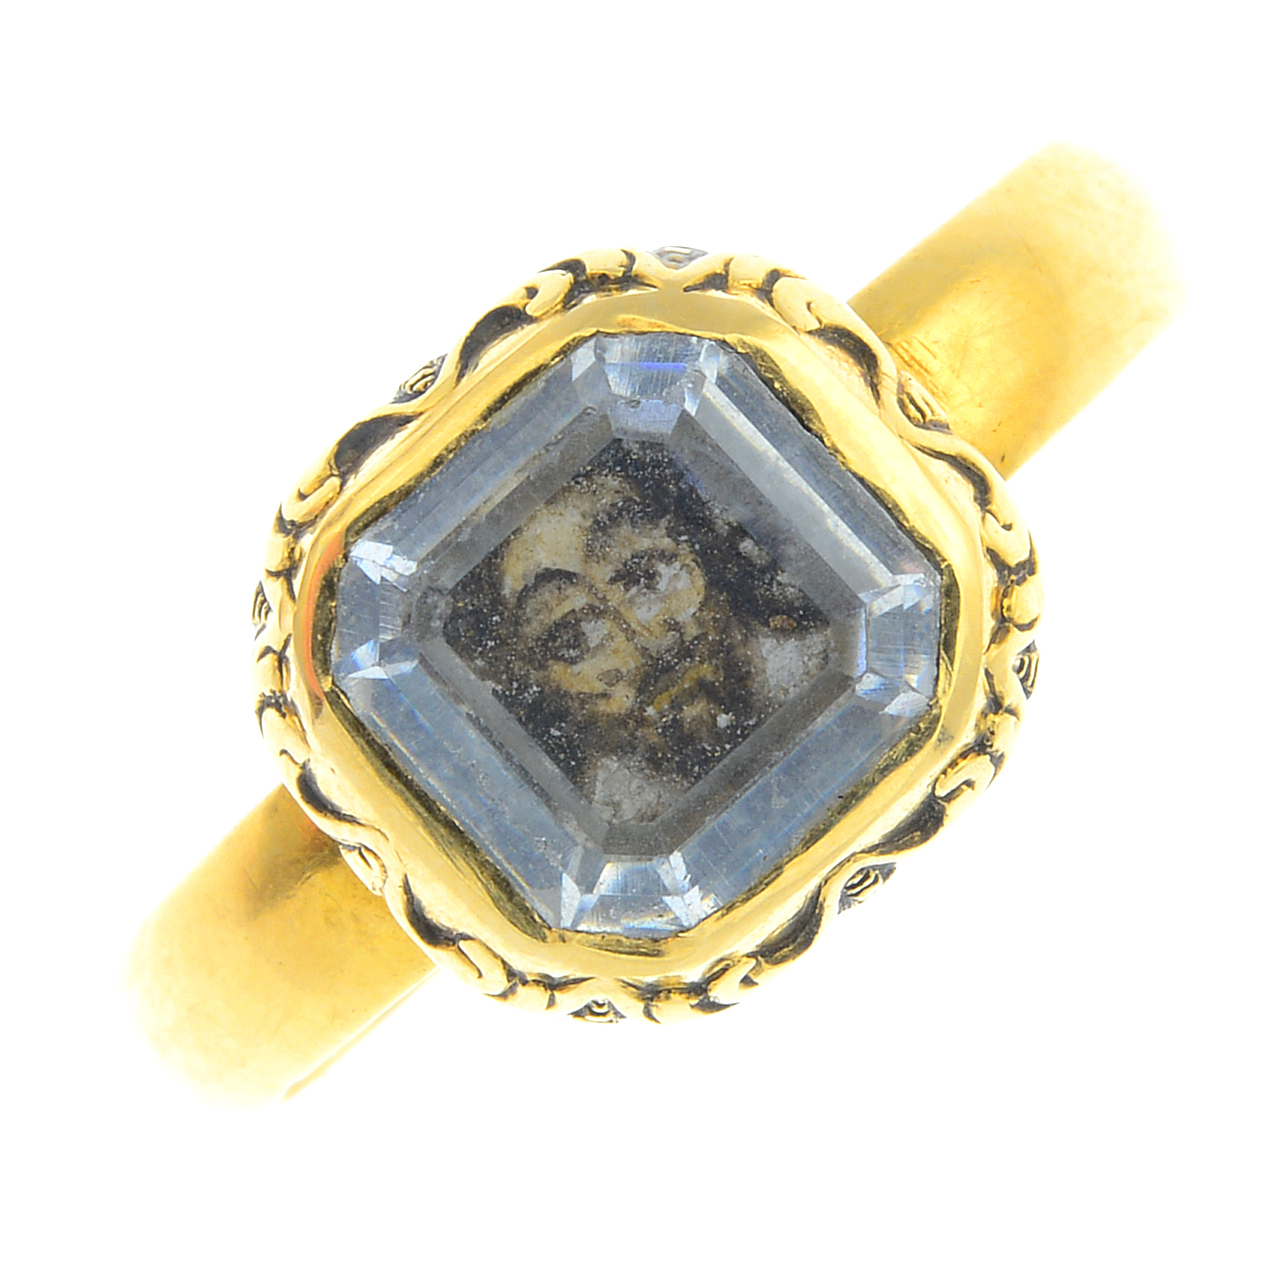 17th century Charles I Stuart crystal ring